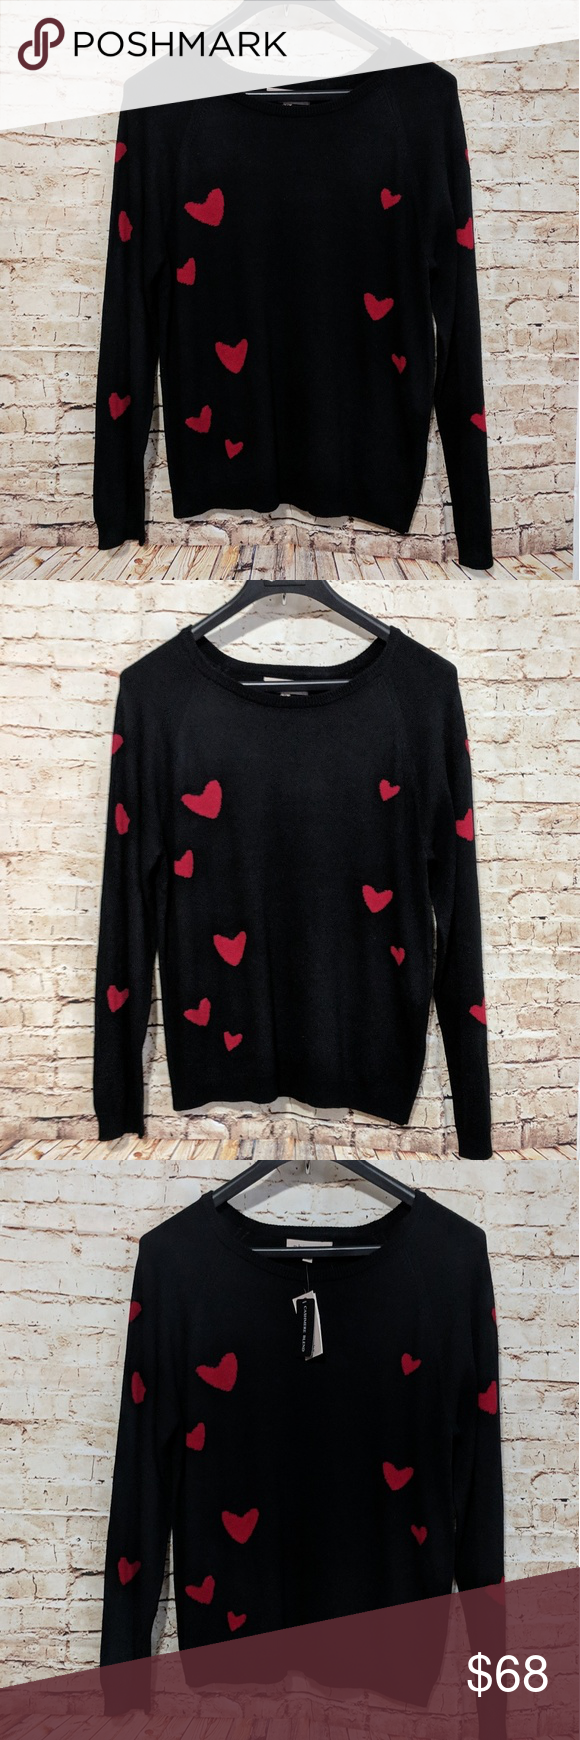 3ac176f4a0ee Philosophy Heart Print Sweater Cashmere blend Philosophy Heart Crewneck  Sweater Perfect gift idea! Lightweight cashmere blend sweater's in a fun  allover ...